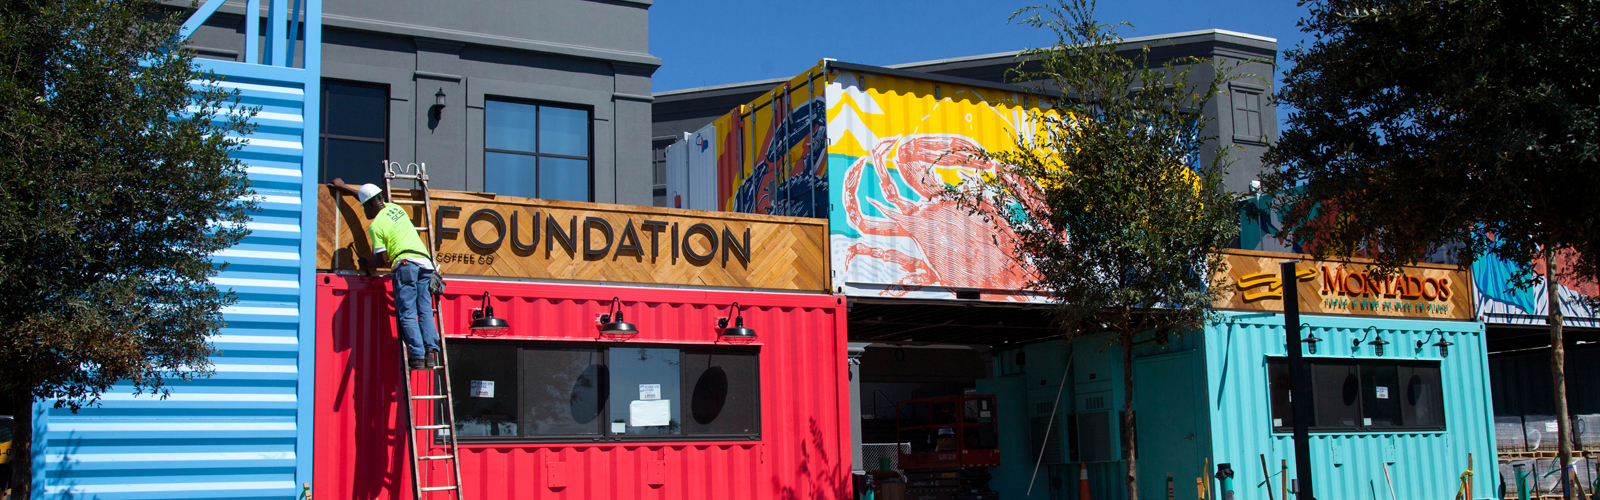 Restaurants inside eclectic shipping containers at Sparkman Wharf in the Channelside District. <span class='image-credits'>Amber Sigman</span>